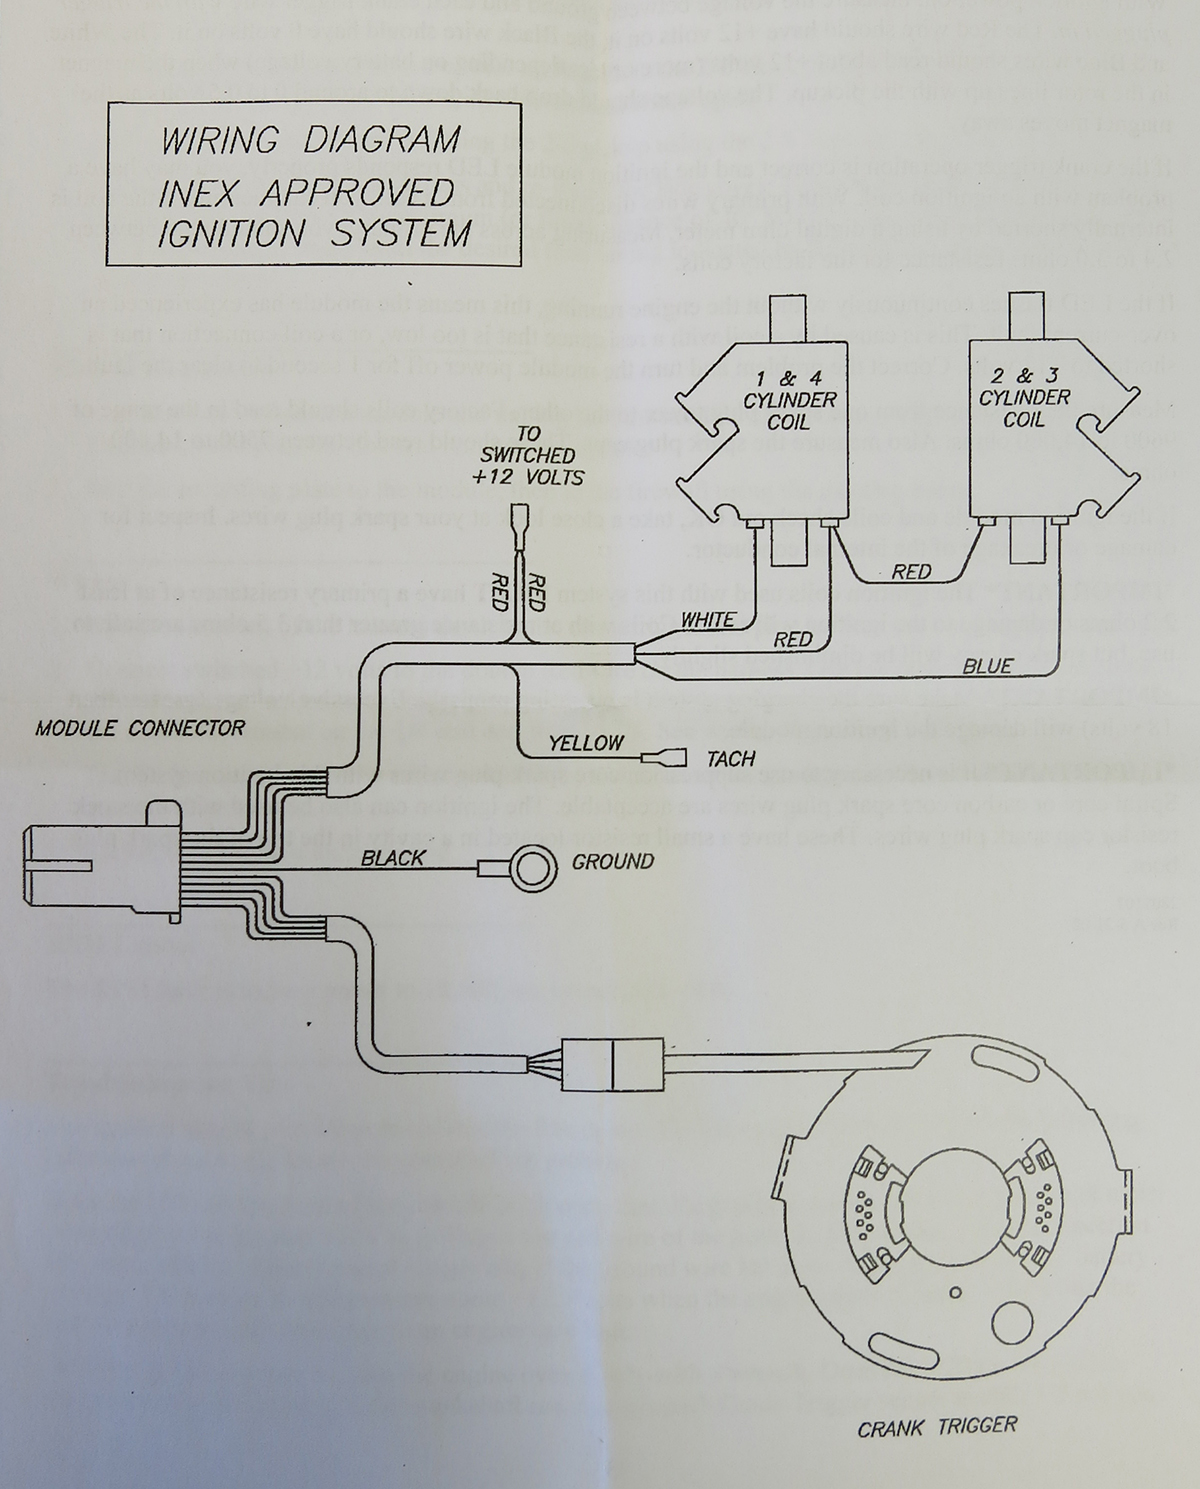 inexboxwiringdiagram?t=1439404195 andrews motorsports technical information Electrical Wiring Symbols at edmiracle.co